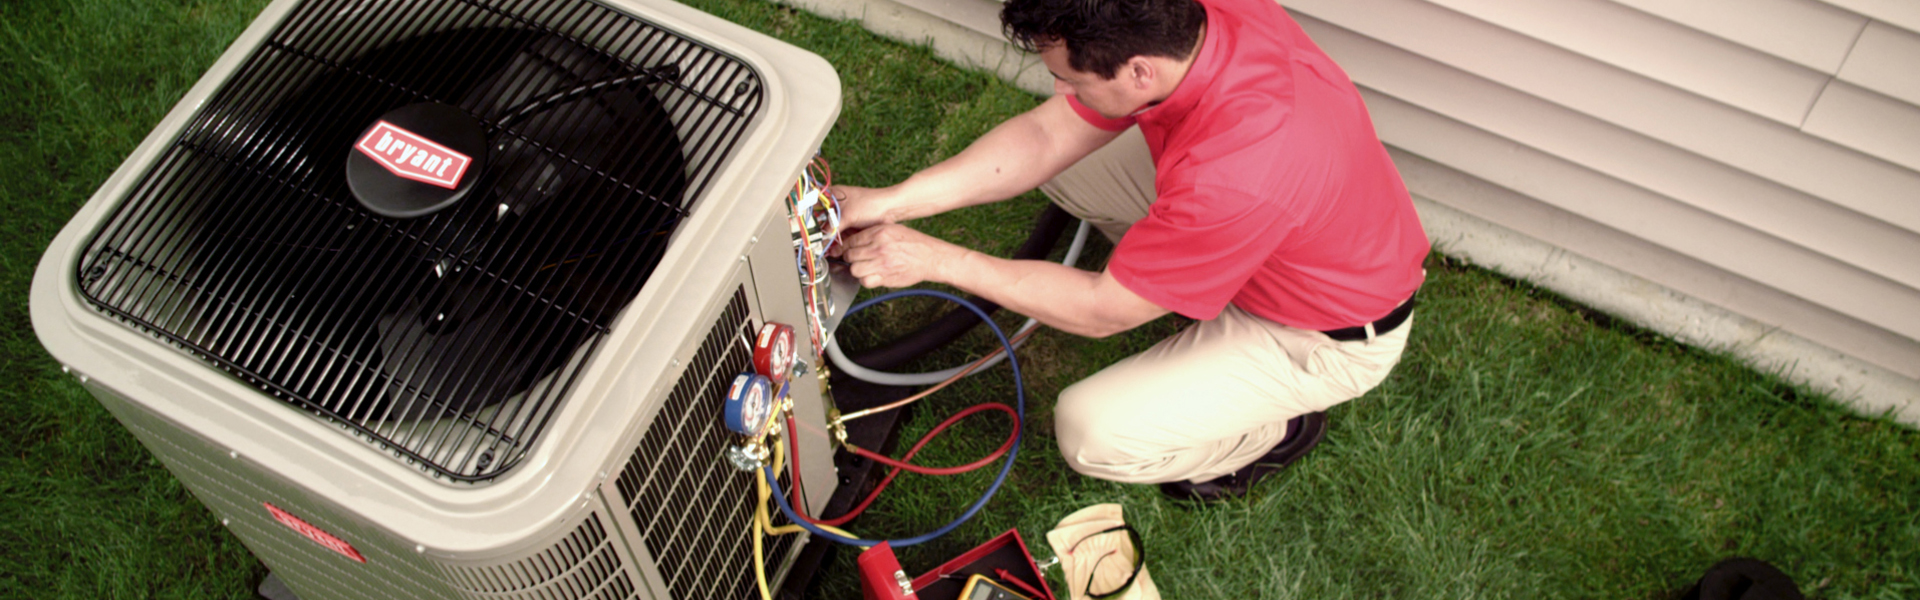 We install and maintain many types of Heating systems for all of residential and comercial needs